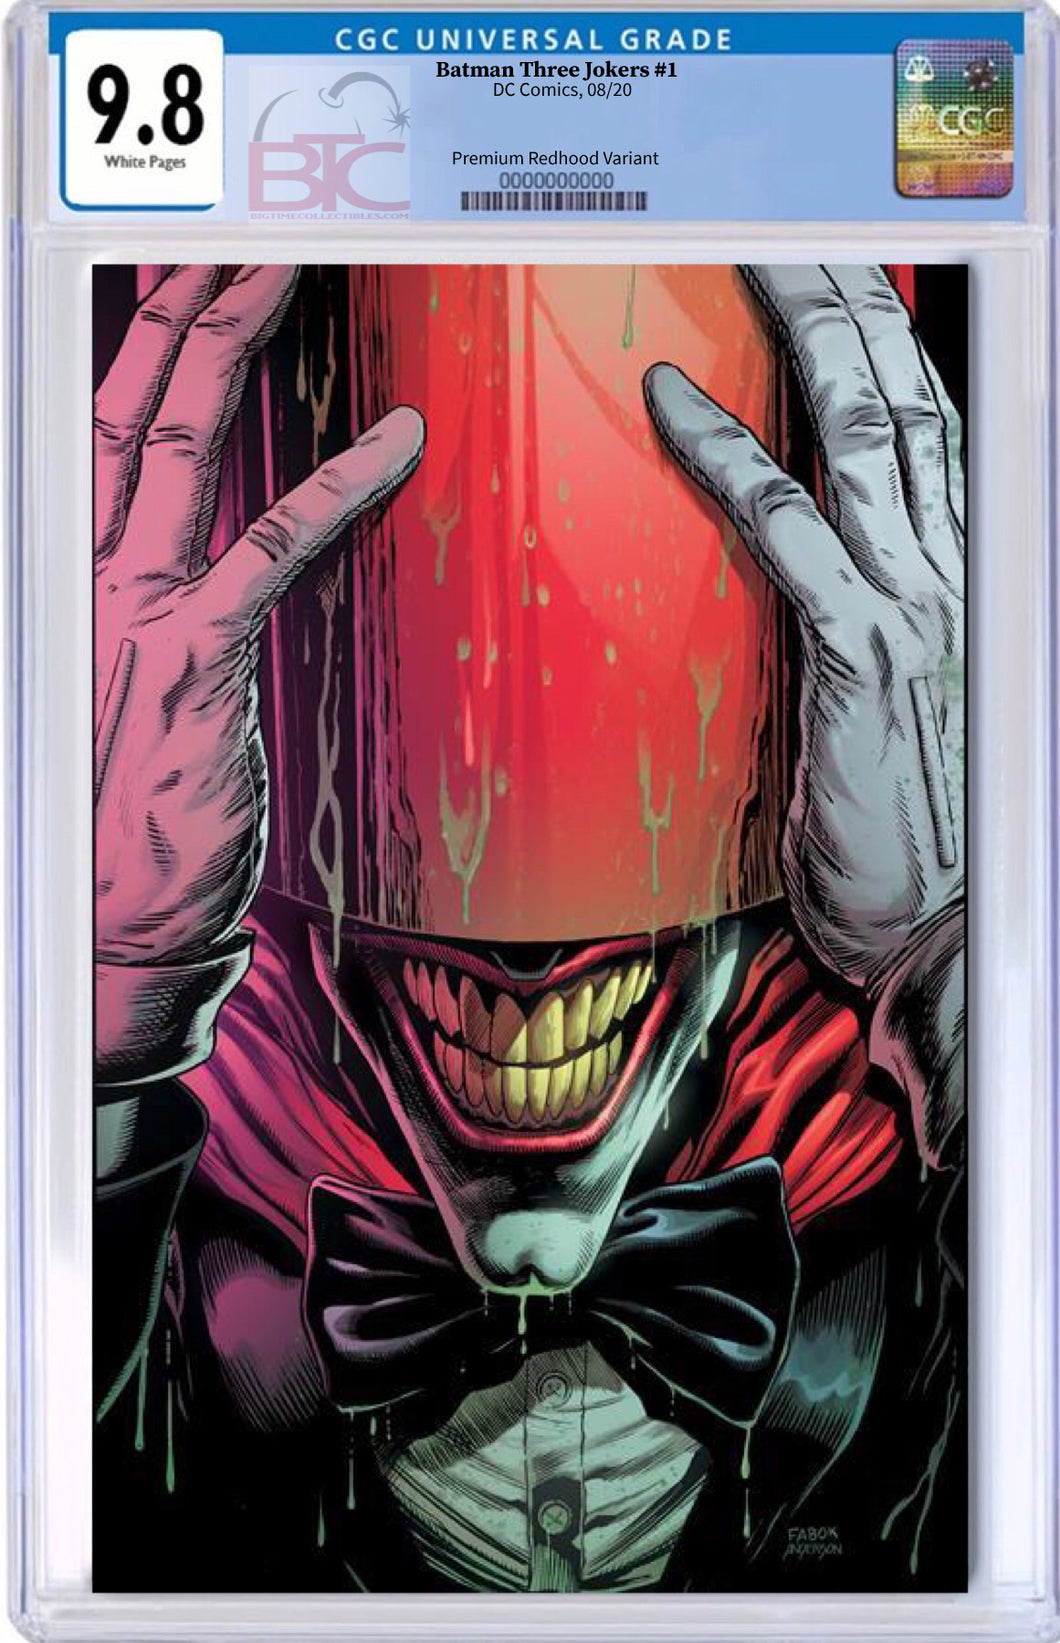 BATMAN THREE JOKERS #1 (OF 3) PREMIUM VAR A RED HOOD CGC 9.8